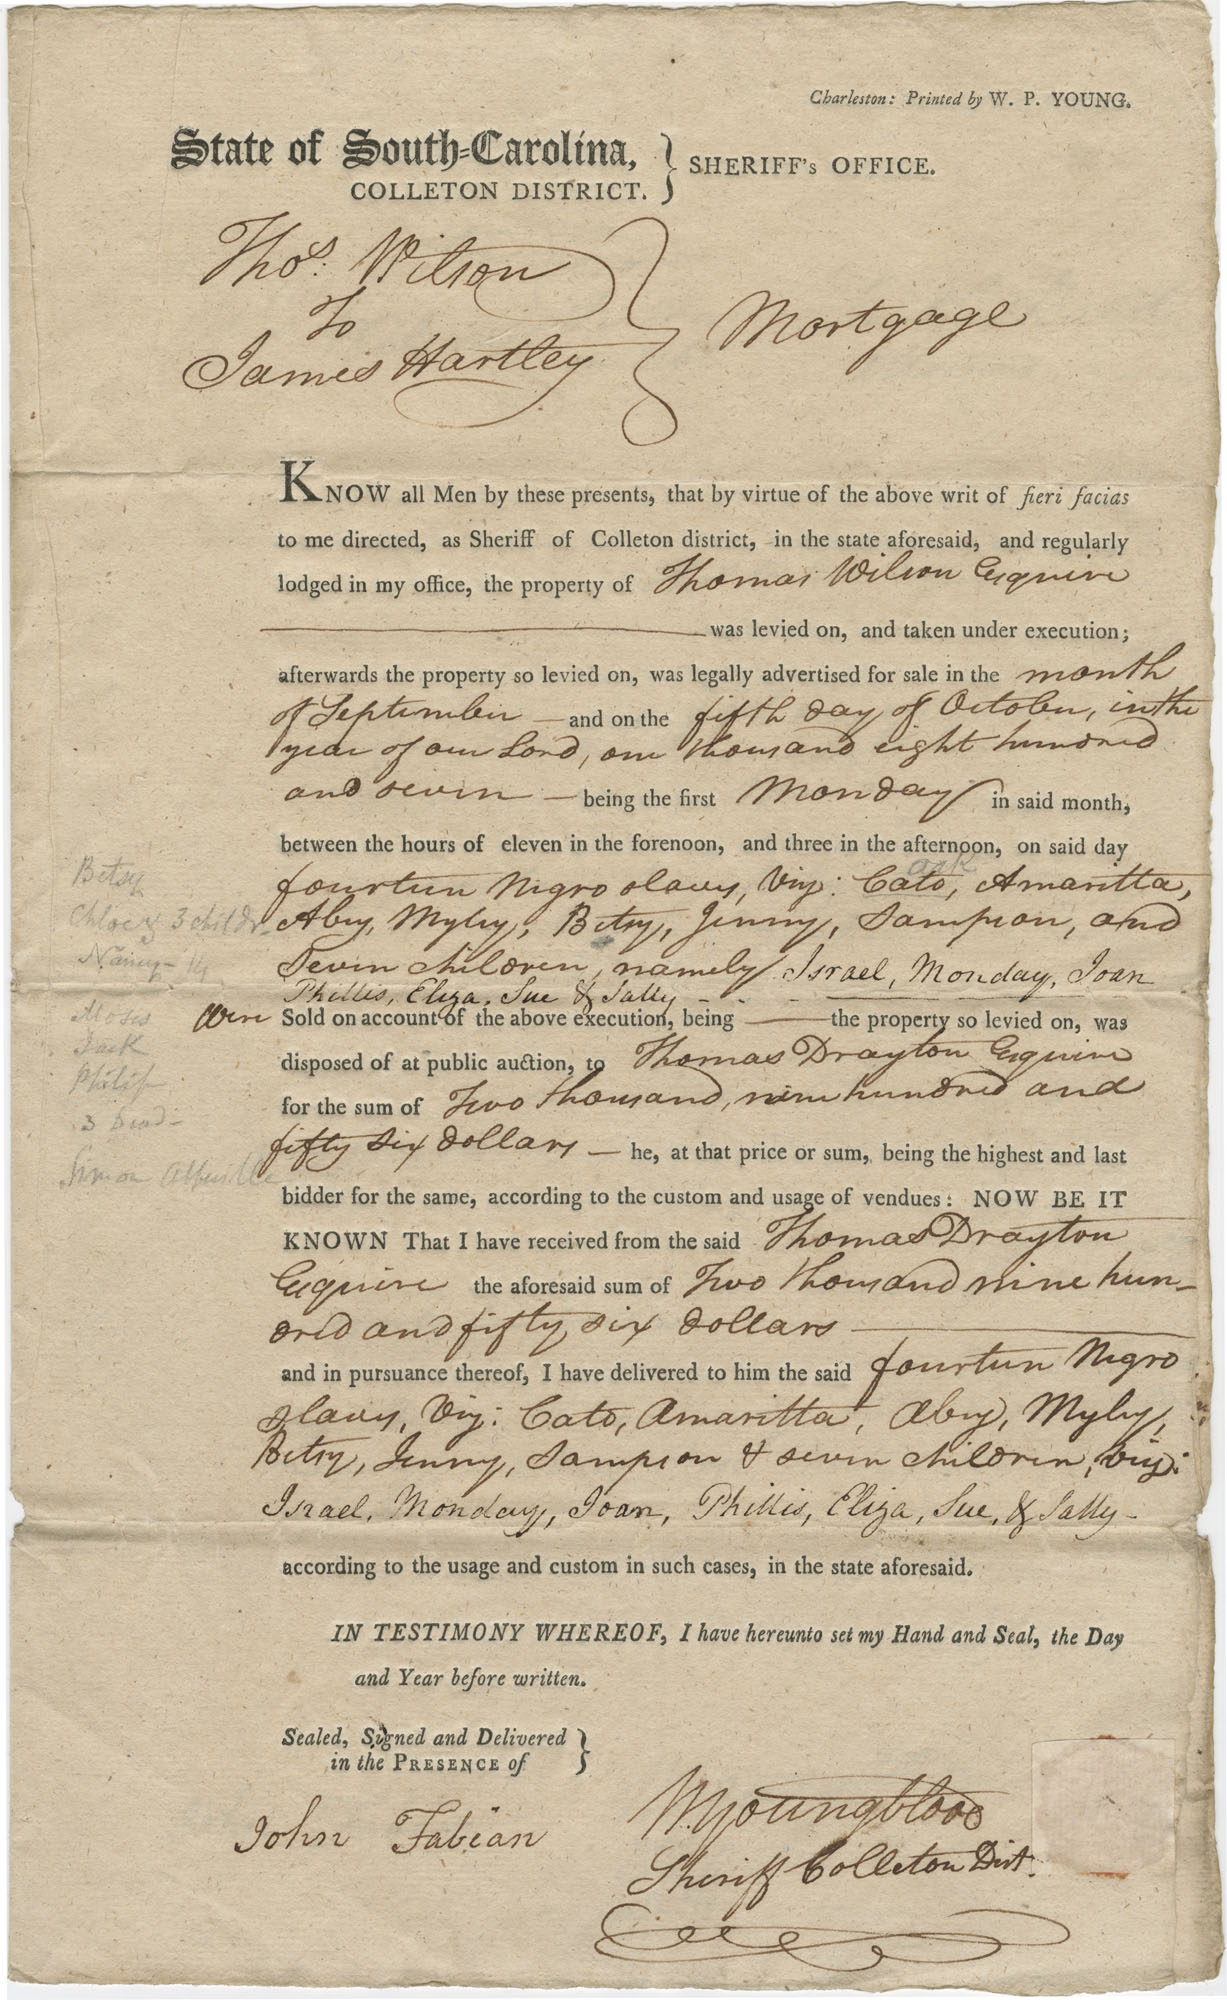 Bill of Sale for fourteen slaves to James Hartley of Colleton District, South Carolina, October 5, 1807